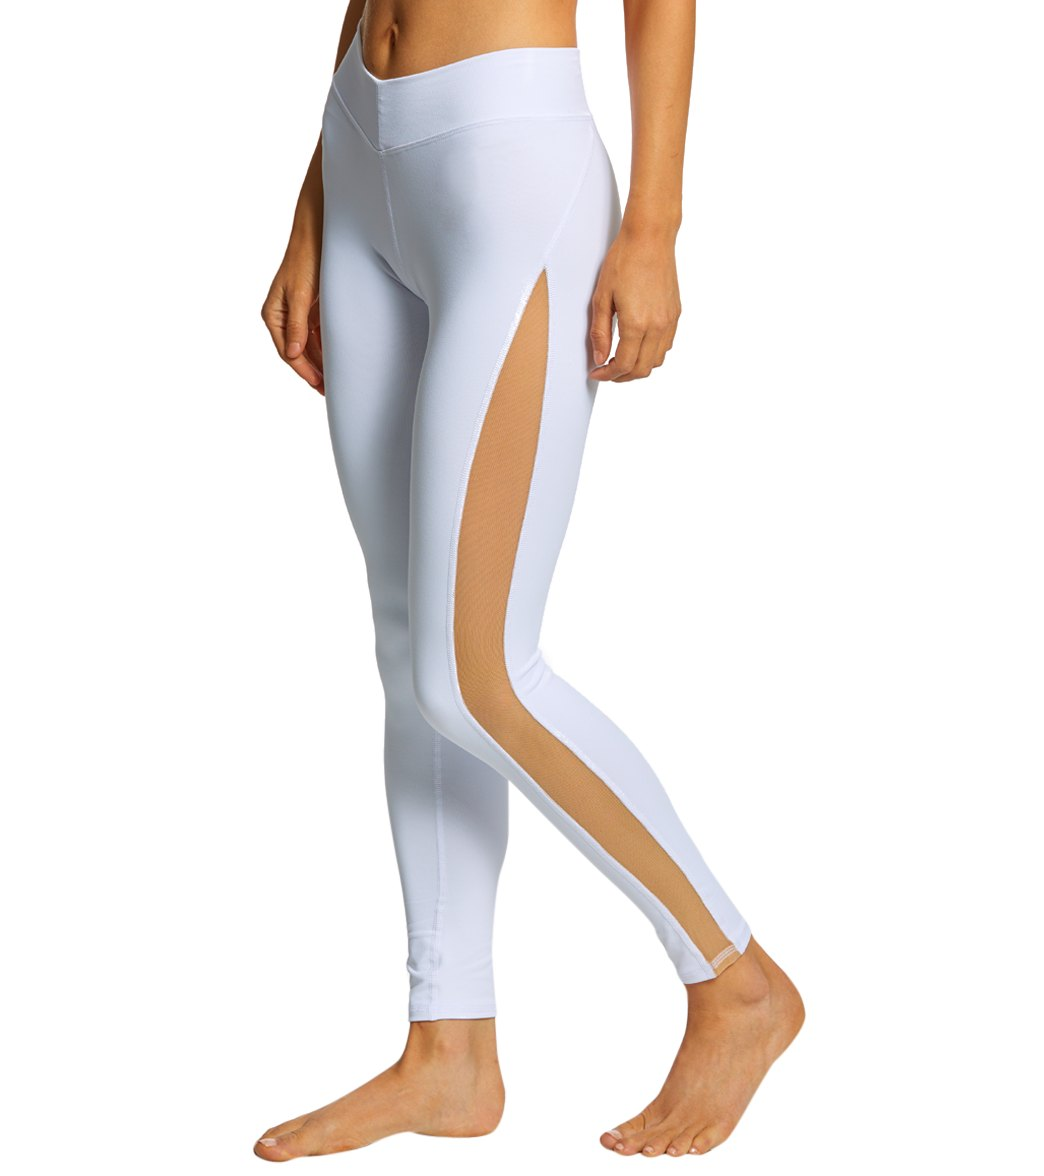 NUX Double Seamless Yoga Leggings - White Spandex